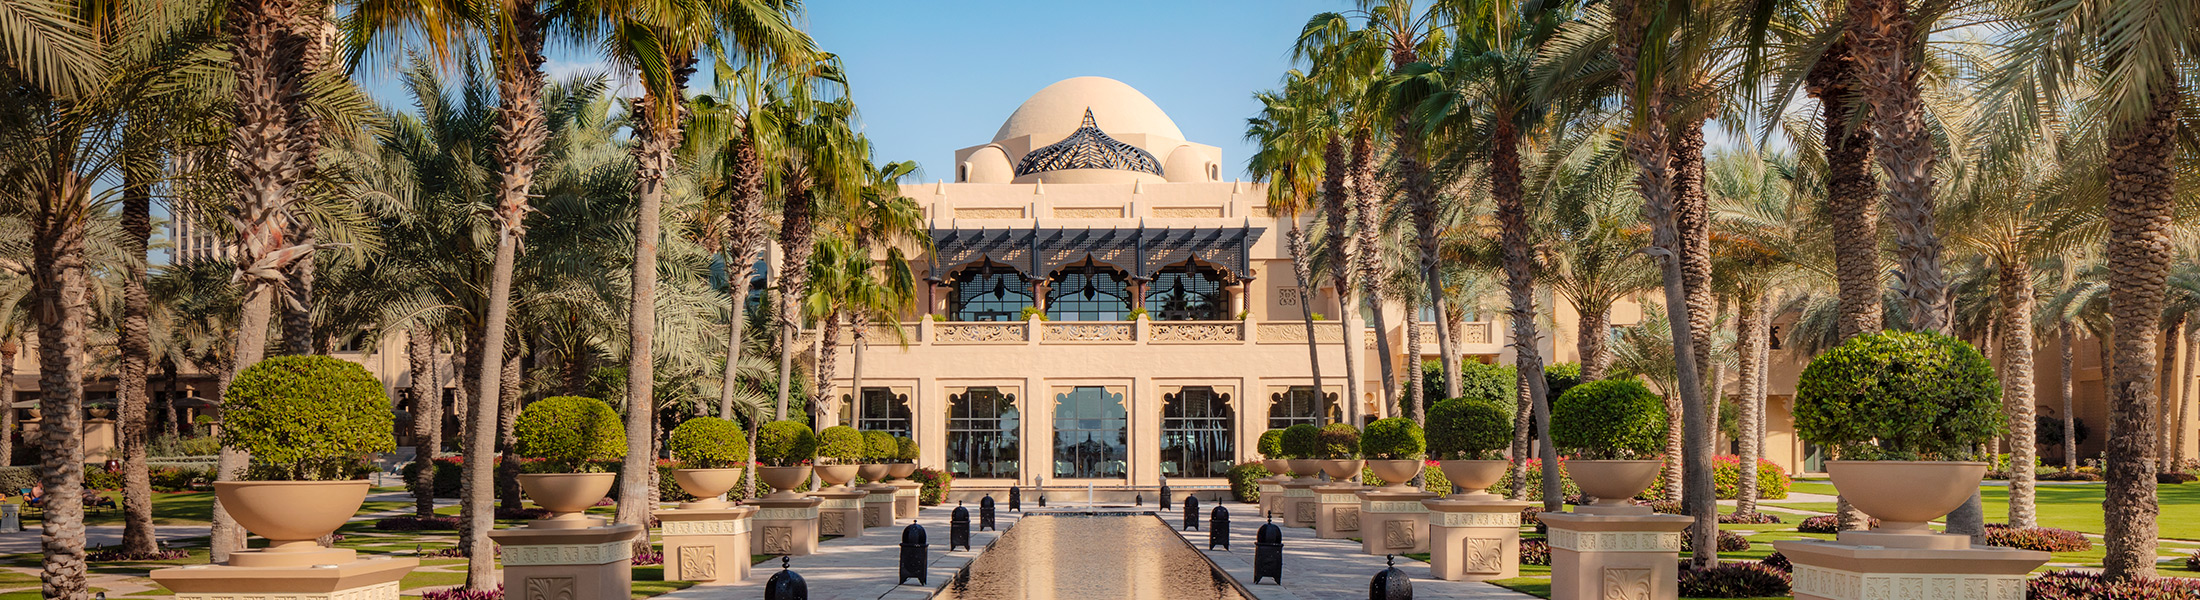 Exterior of Arabian Court One&Only Royal Mirage